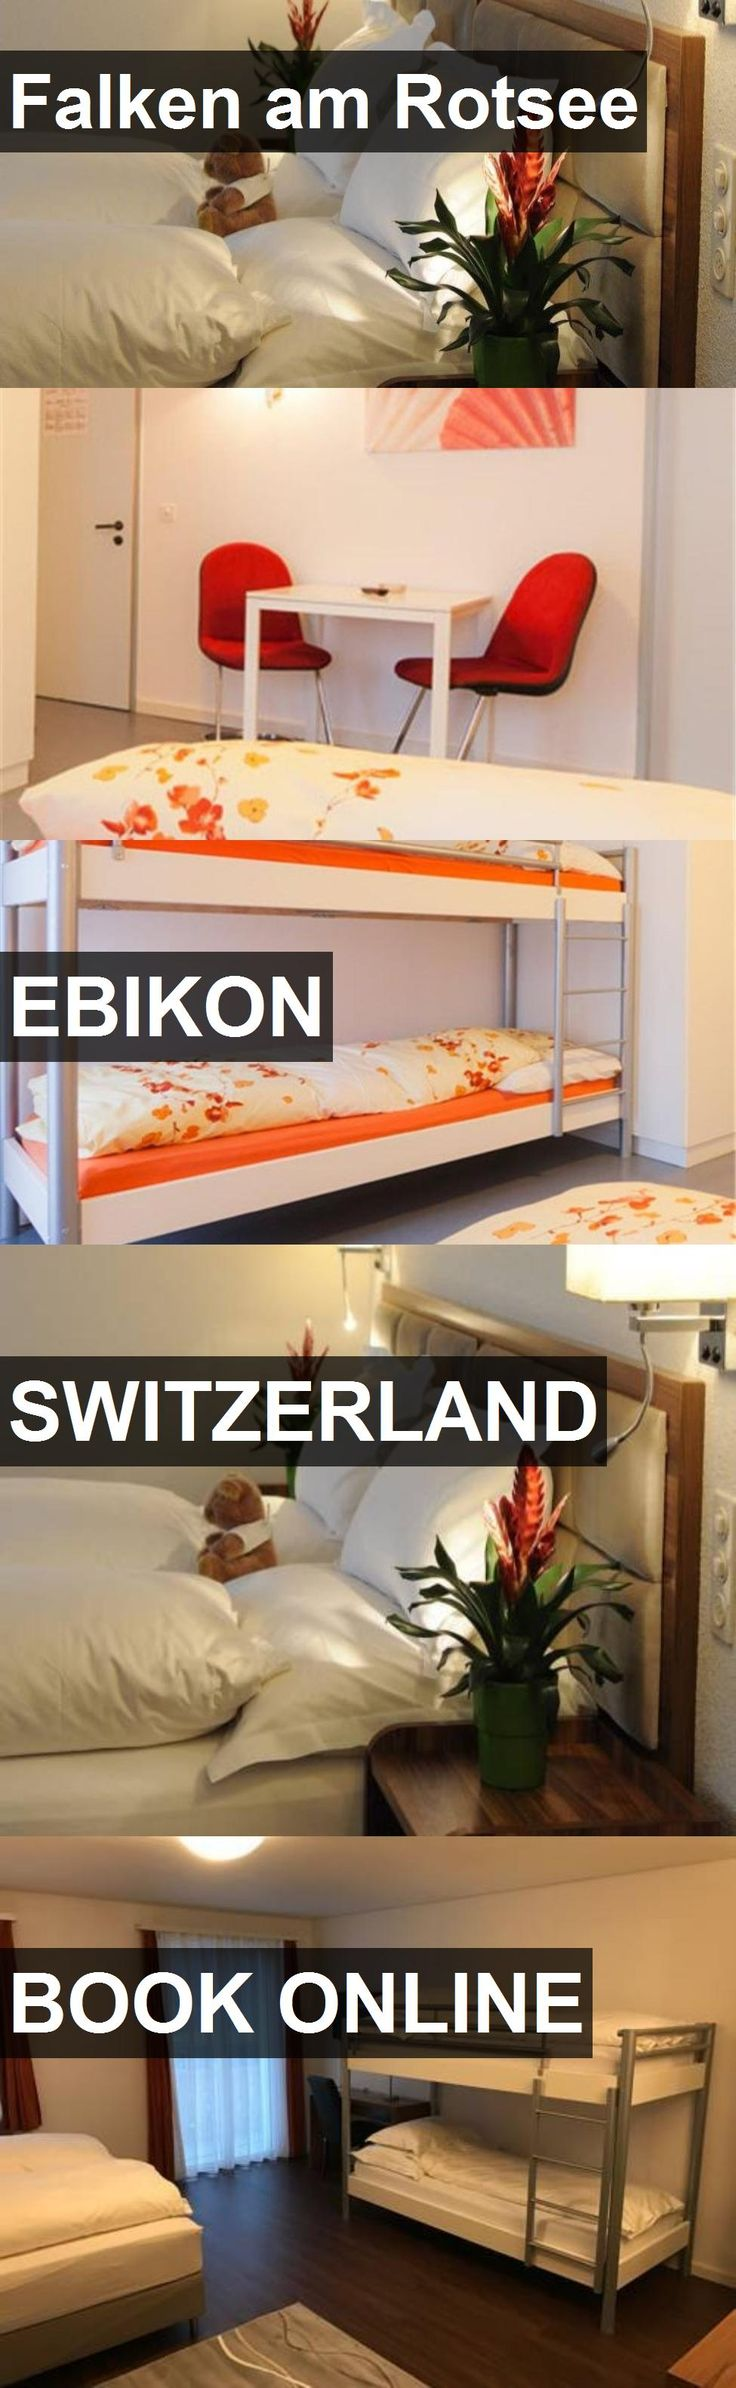 Hotel Falken am Rotsee in Ebikon, Switzerland. For more information, photos, reviews and best prices please follow the link. #Switzerland #Ebikon #travel #vacation #hotel